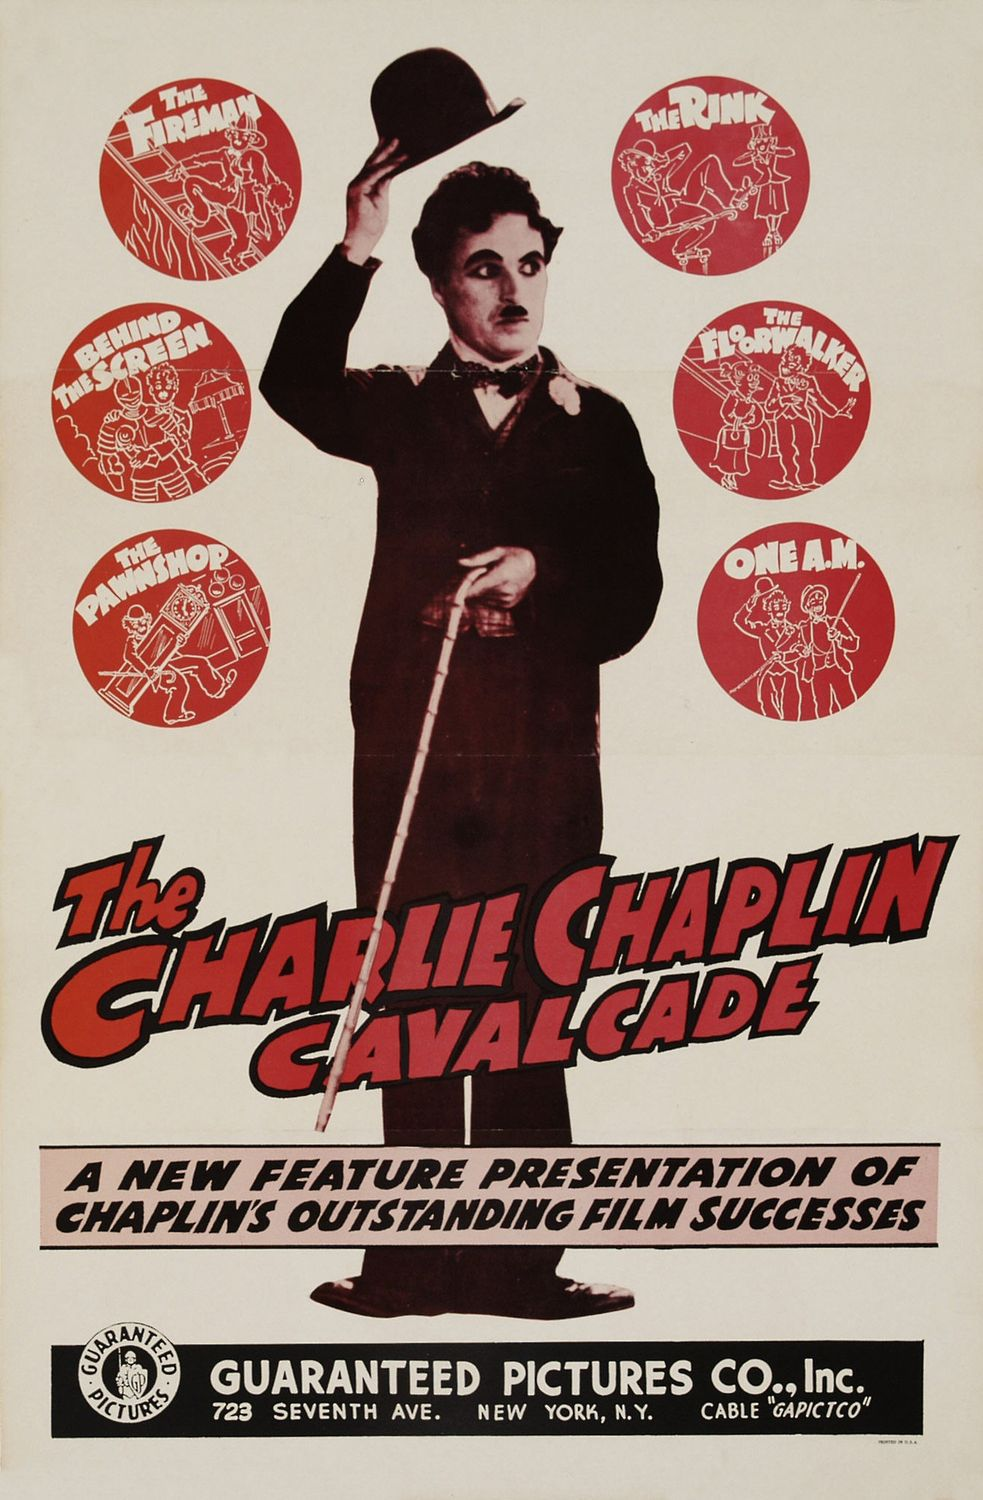 Charlie Chaplin (1938) Cavalcade - Cast: Charles Chaplin, Edna Purviance - old cult film poster